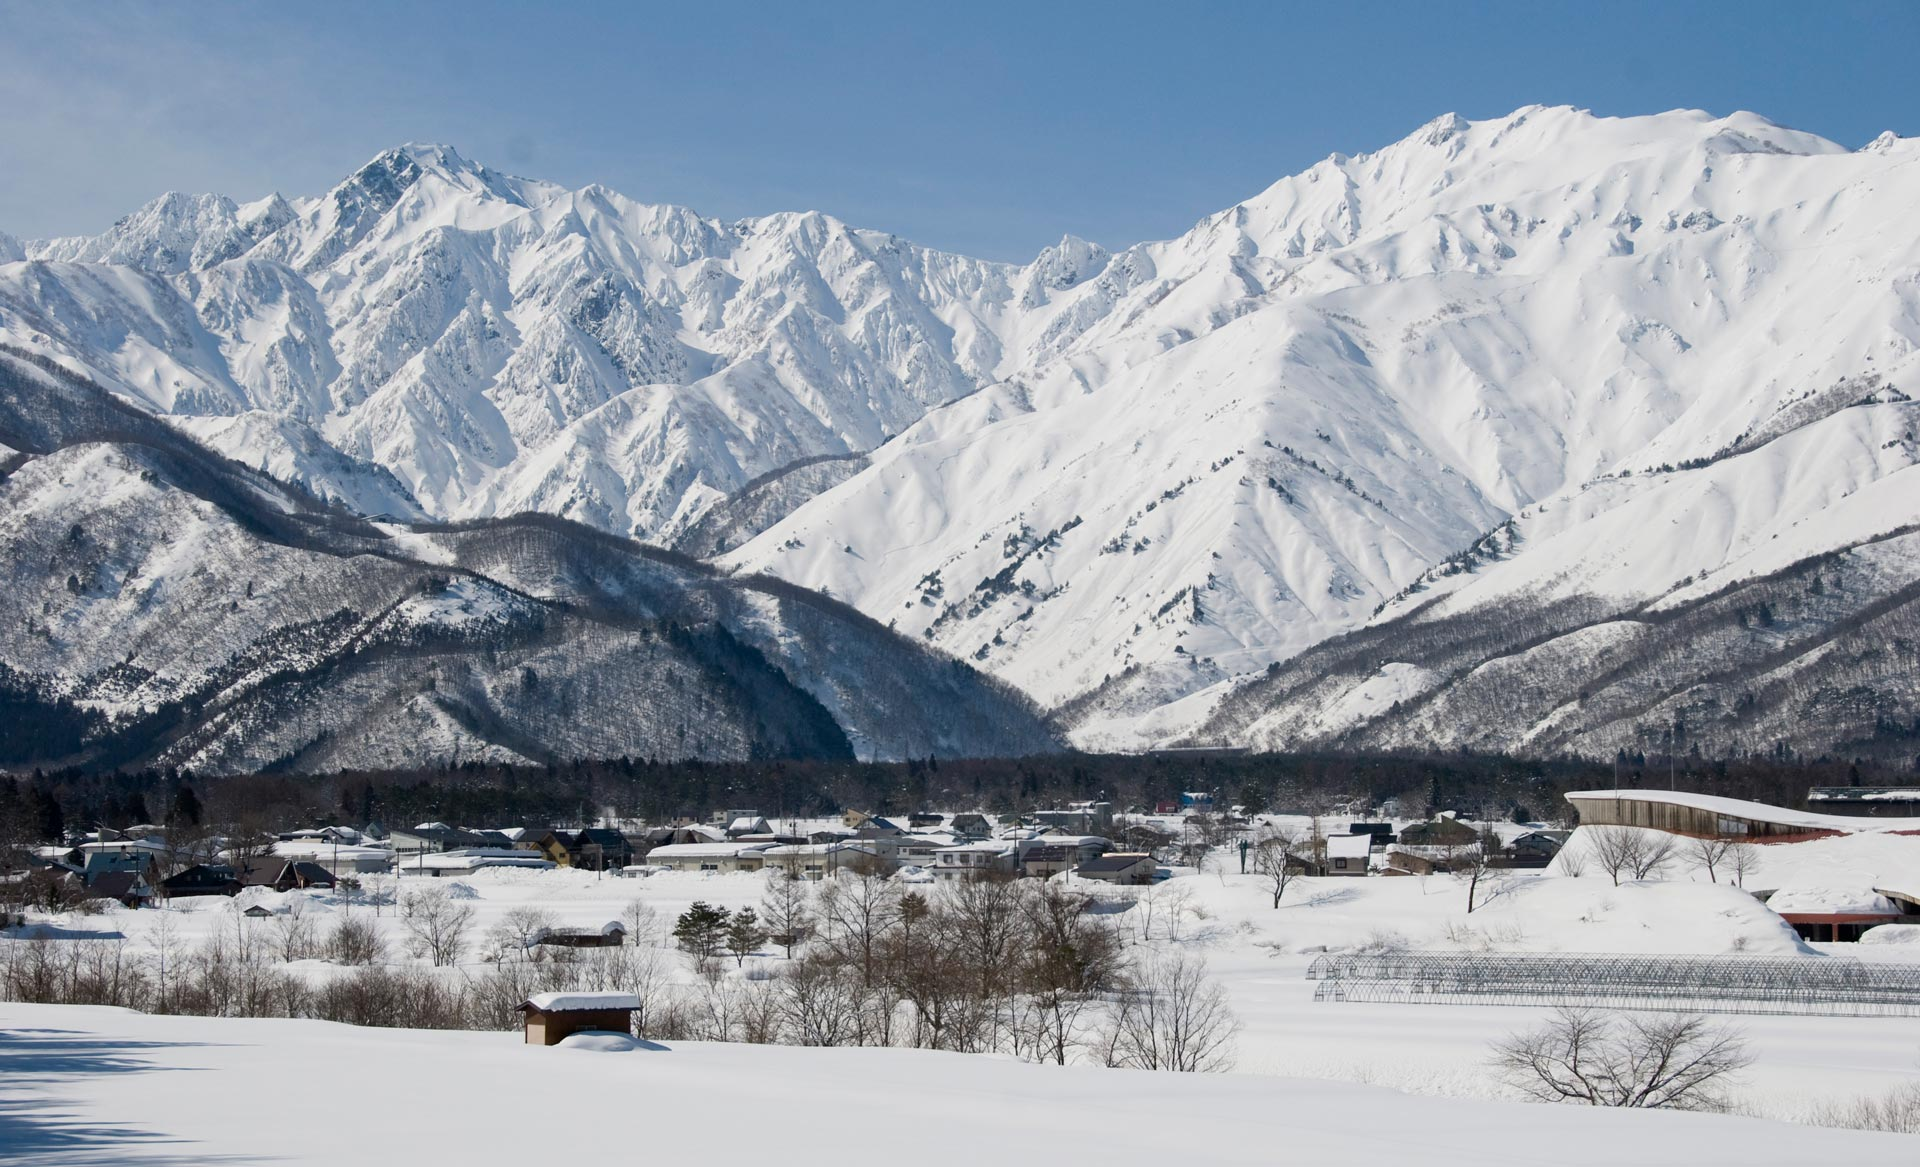 Preview: Das erste FWQ-Event in Hakuba (Japan) - Foto: Sarah Mulholland